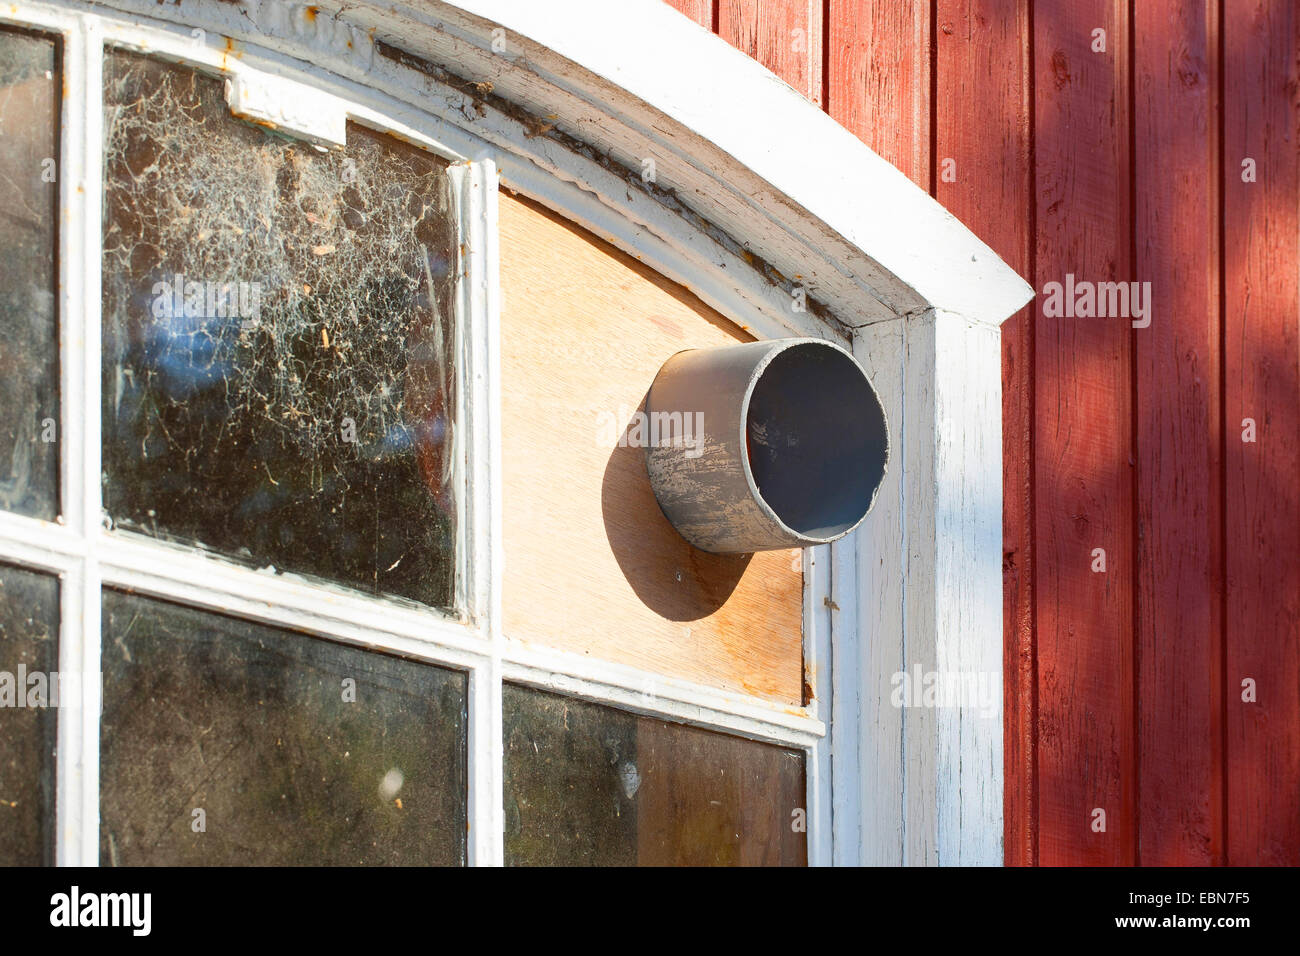 in a window built-in tube, pipe as an opening to the inside of a shed, hollow cavities as a hiding place, access - Stock Image